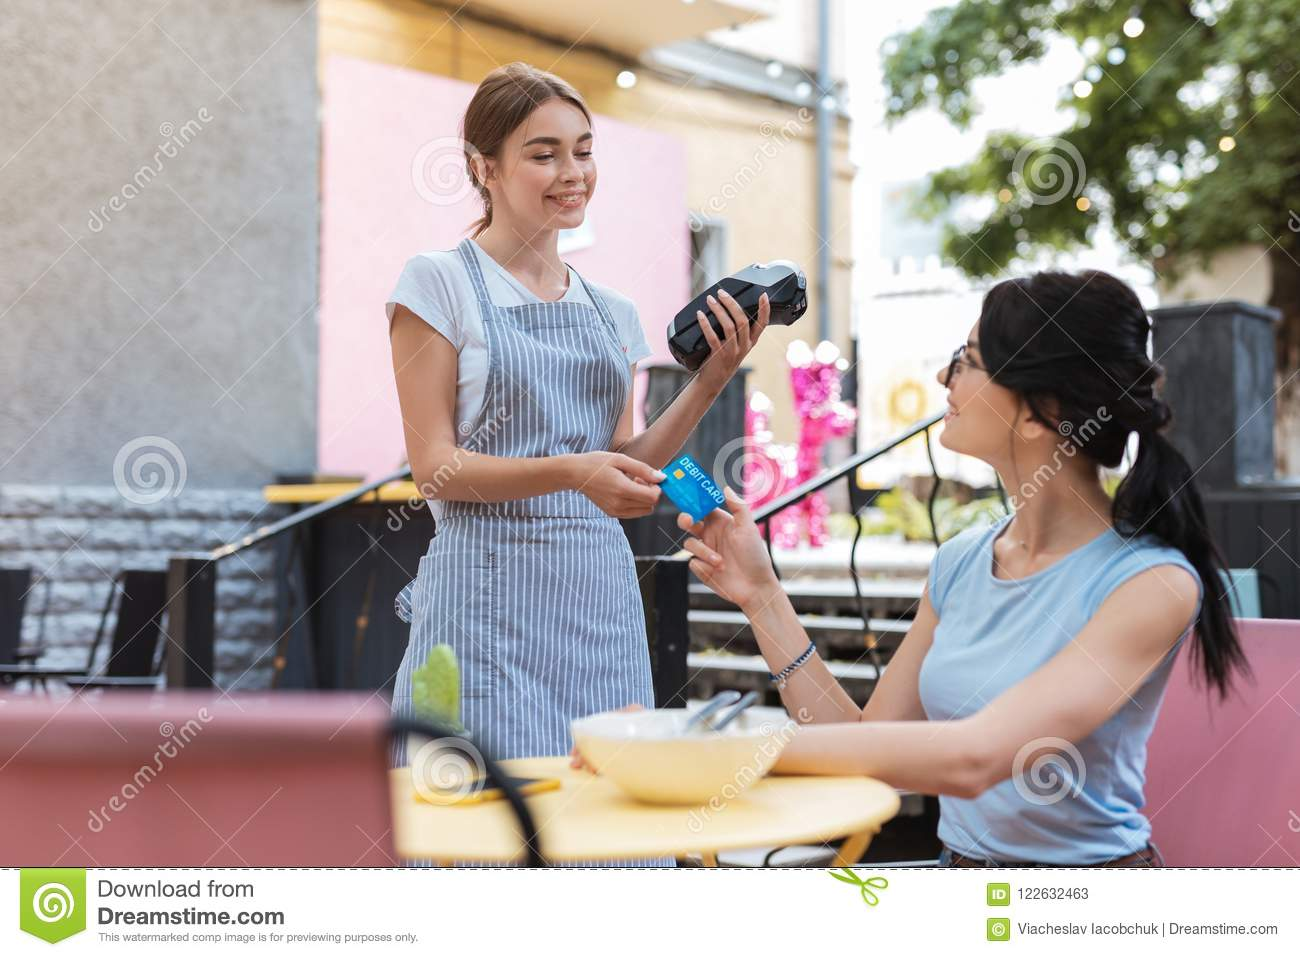 Waitress Wearing Striped Apron Receiving Bank Card From Client Stock